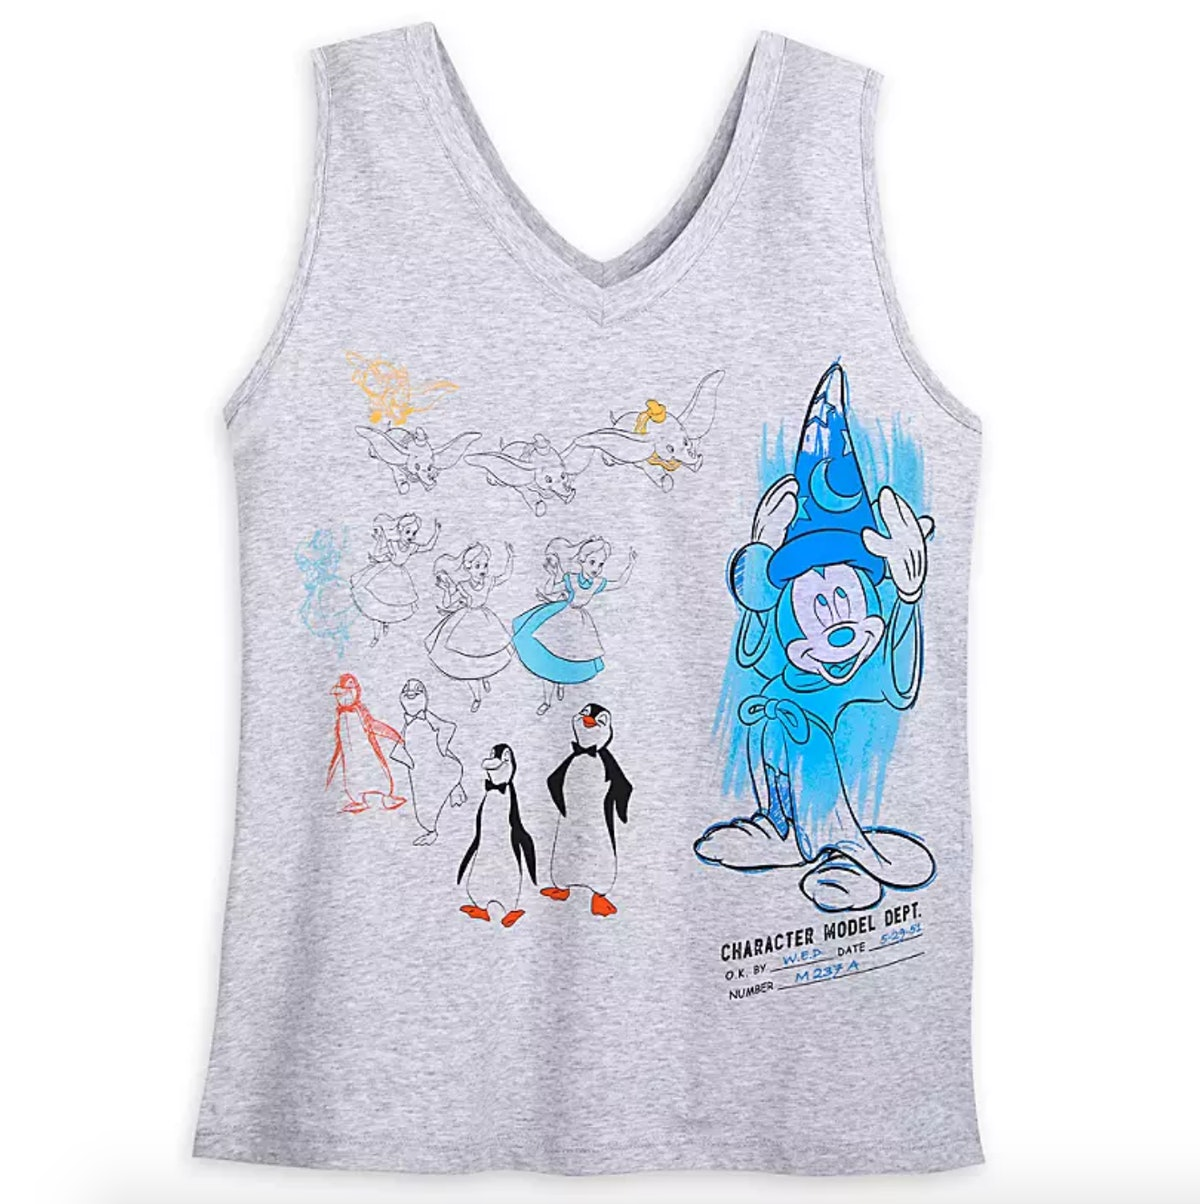 Ink & Paint Fashion Tank Top for Women